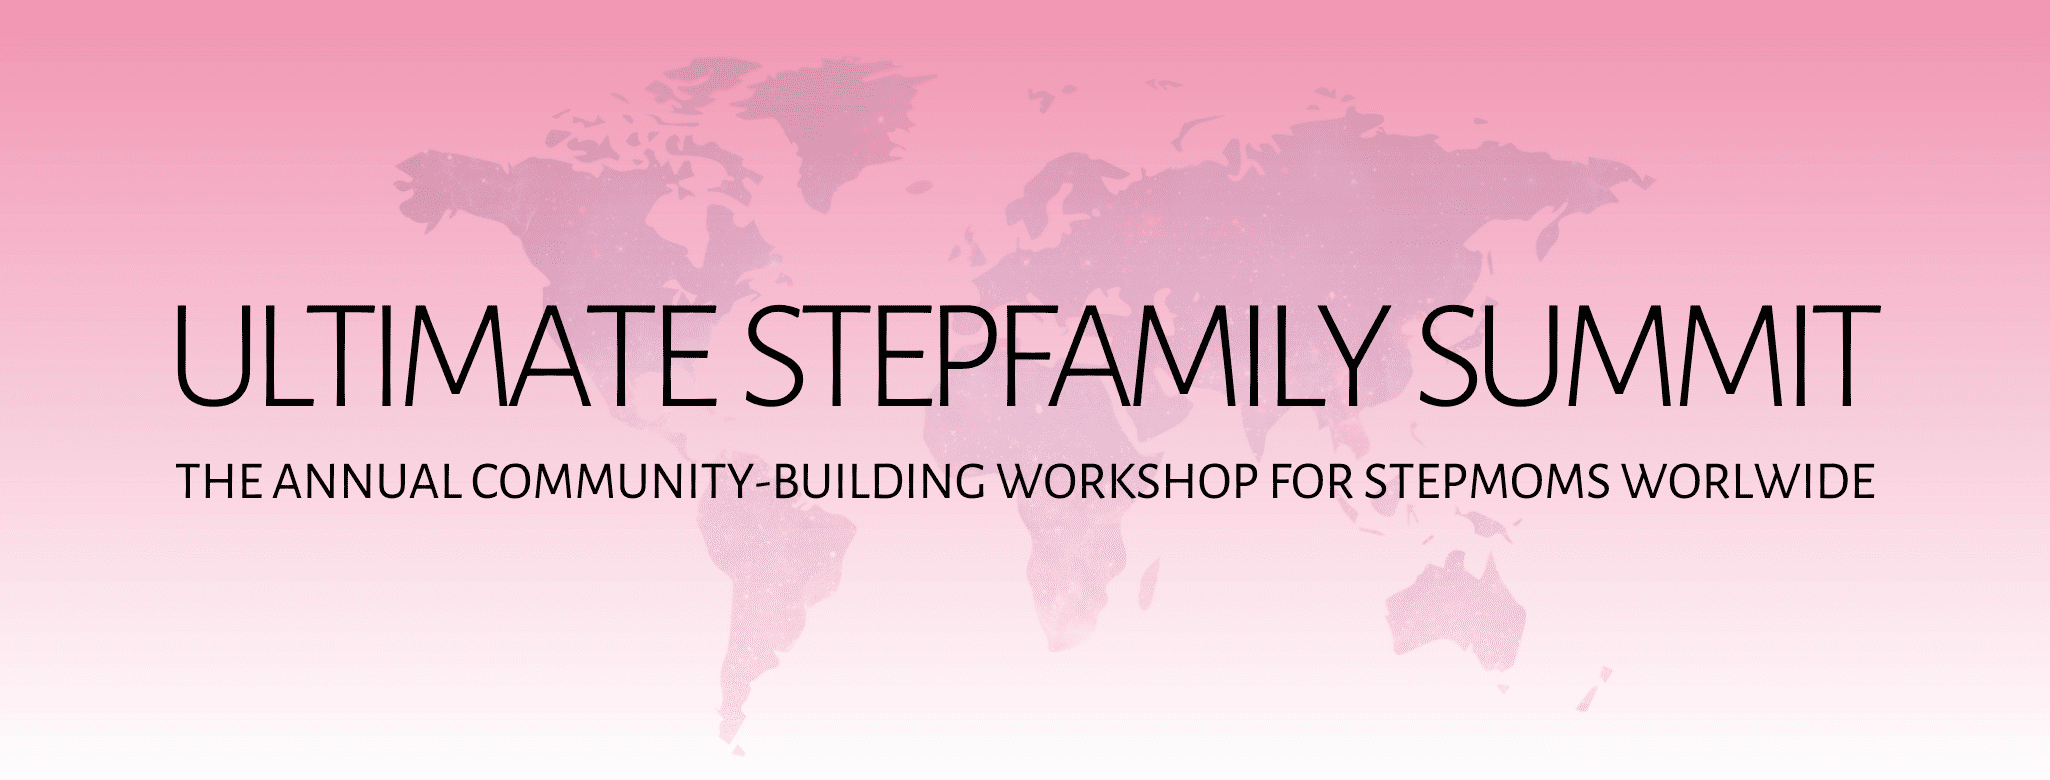 Ultimate Stepfamily summit header in pink with world map